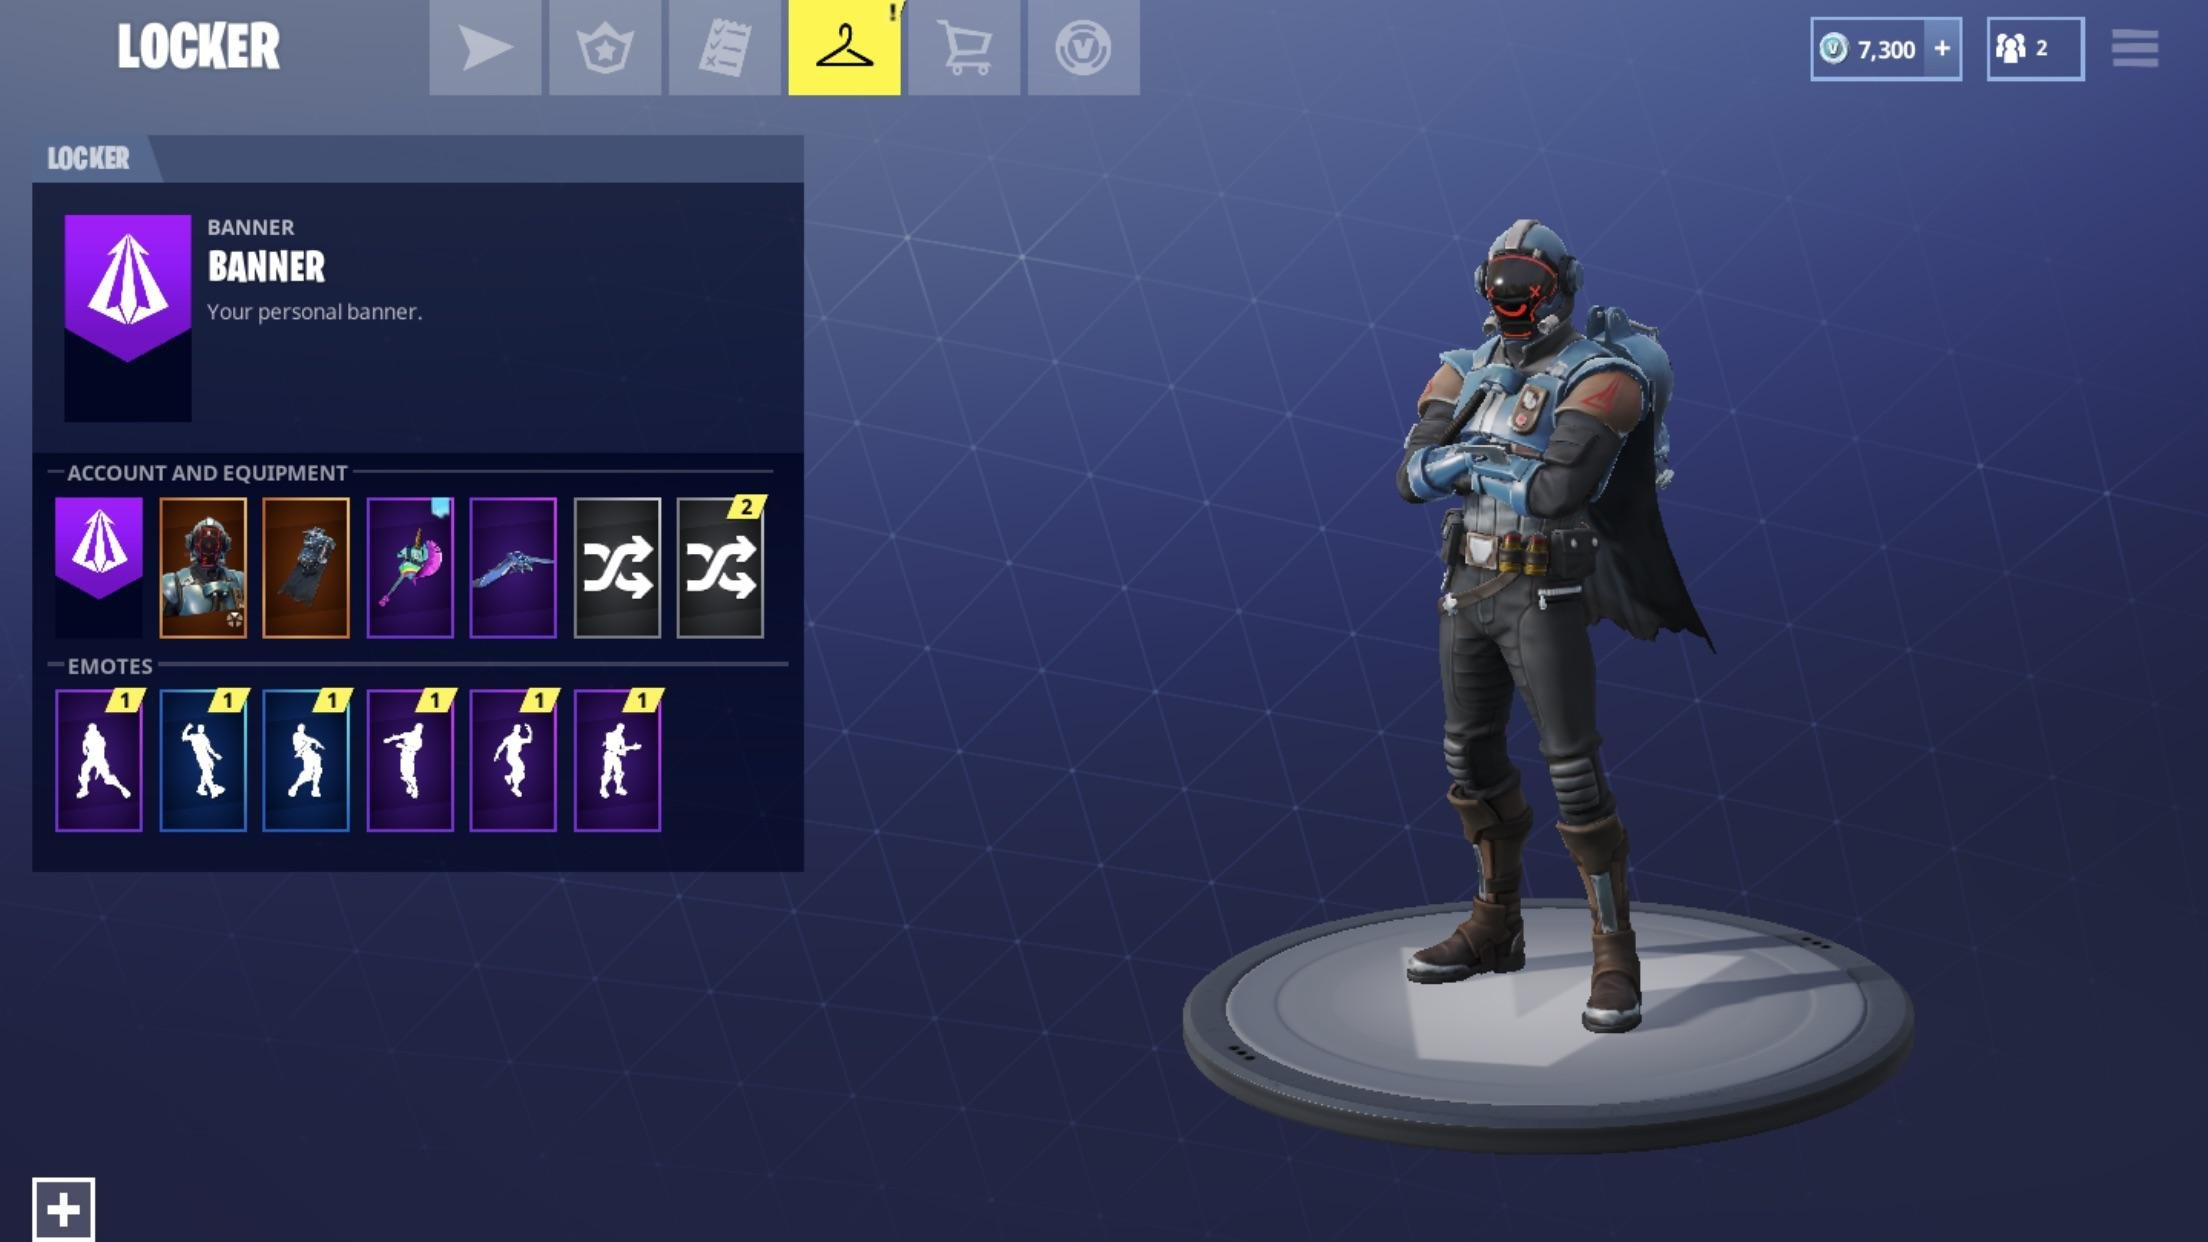 Blockbuster Skin - The Visitor